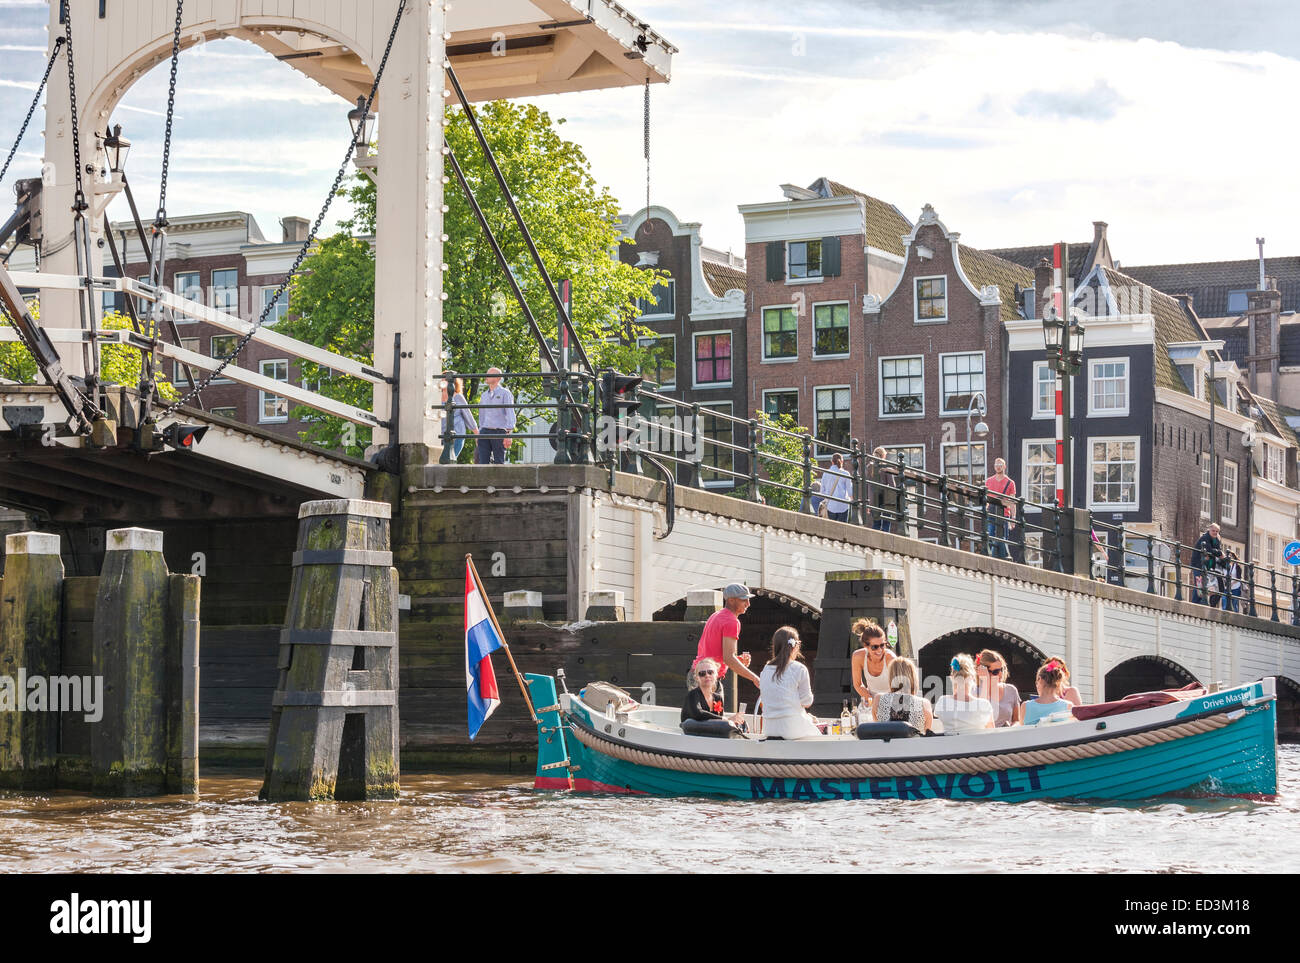 https://c7.alamy.com/comp/ED3M18/amsterdam-amstel-river-with-skinny-bridge-magere-brug-with-electric-ED3M18.jpg